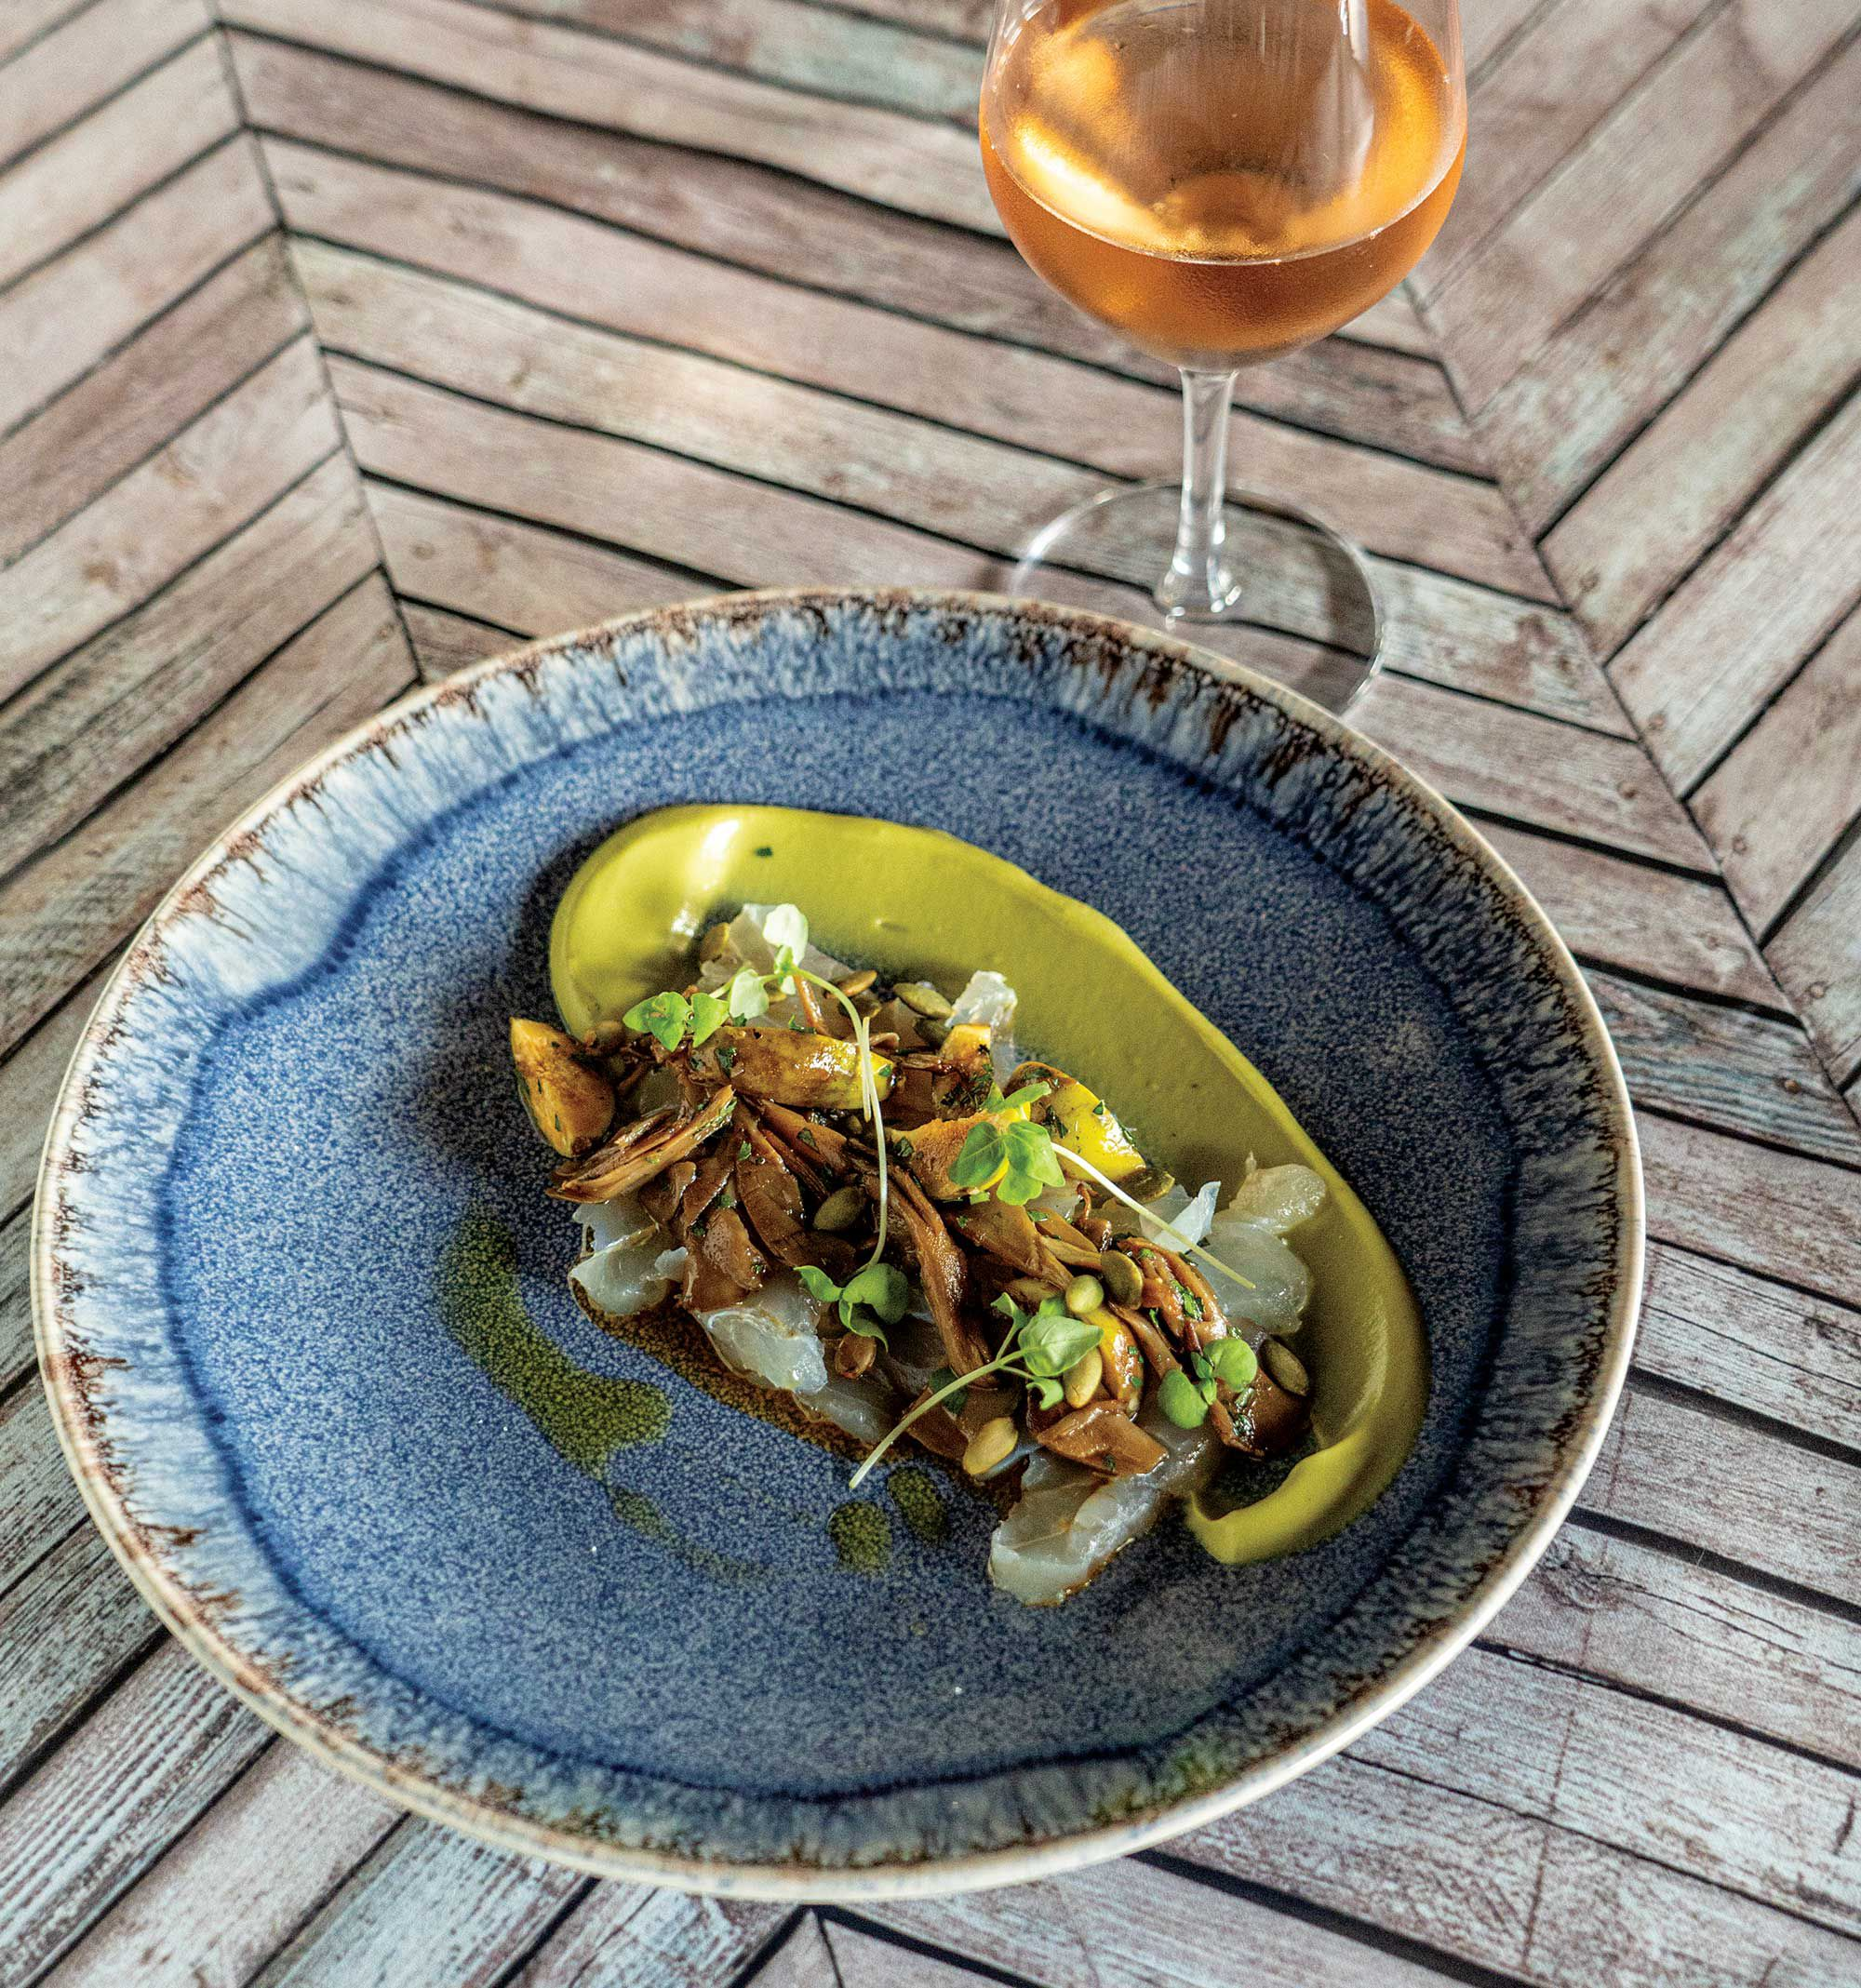 Serve with a glass of chilled Muga, or similar light rosé wine.